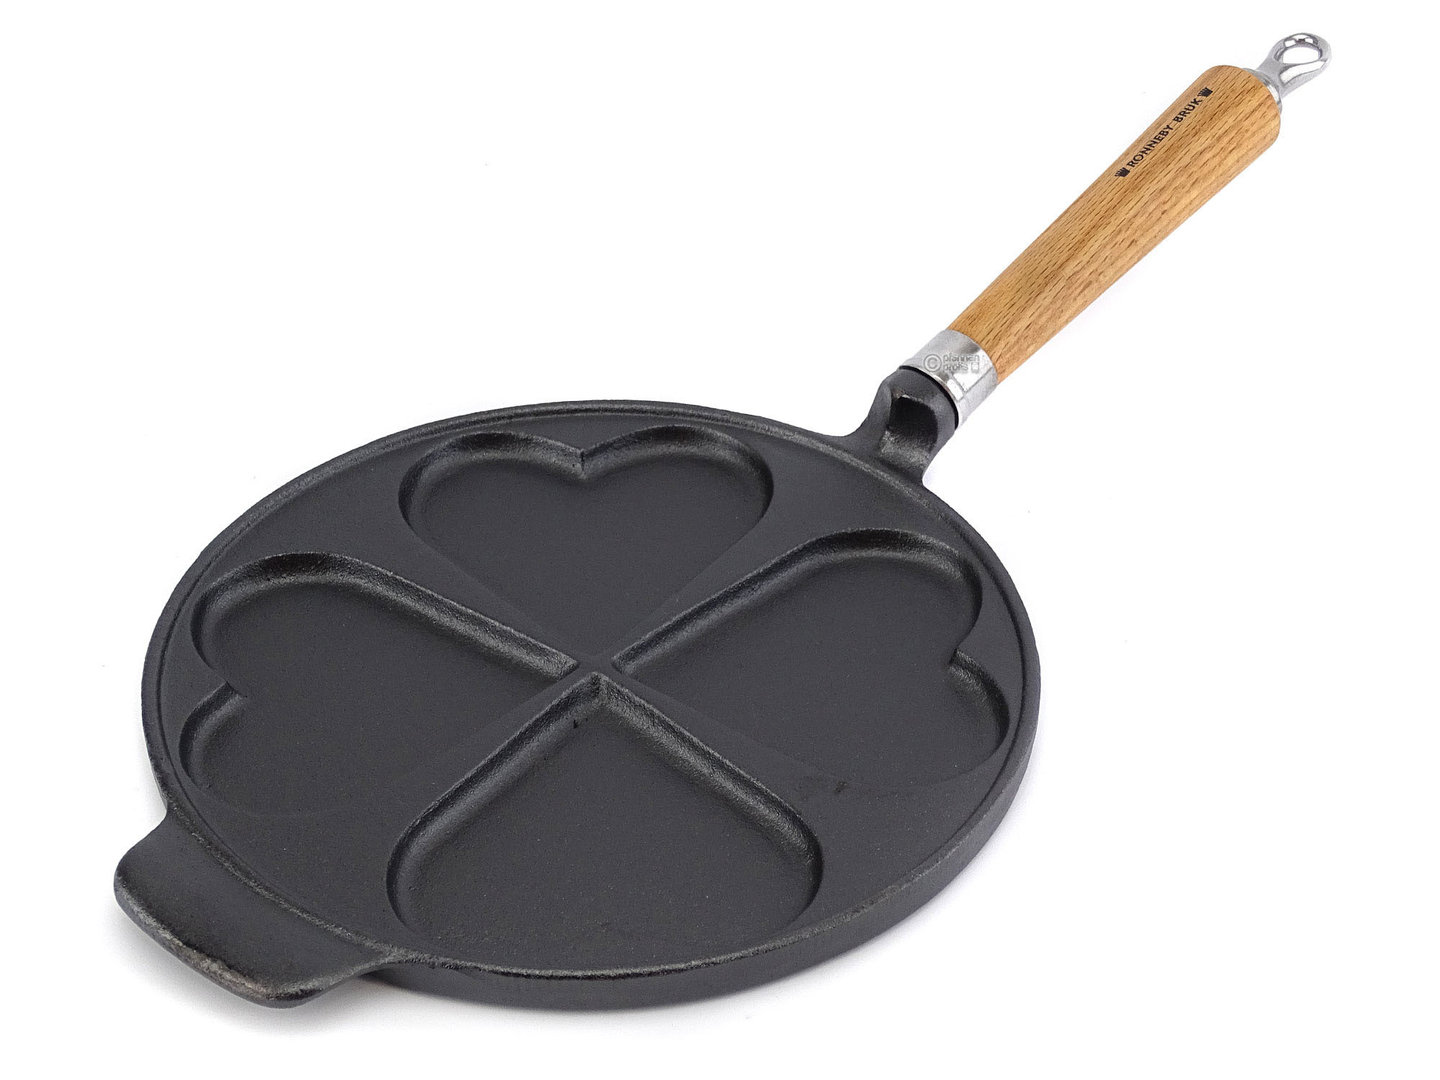 RONNEBY BRUK cast iron HEART-SHAPE pancake pan MAESTRO 24 cm oakwood handle, pre-seasoned